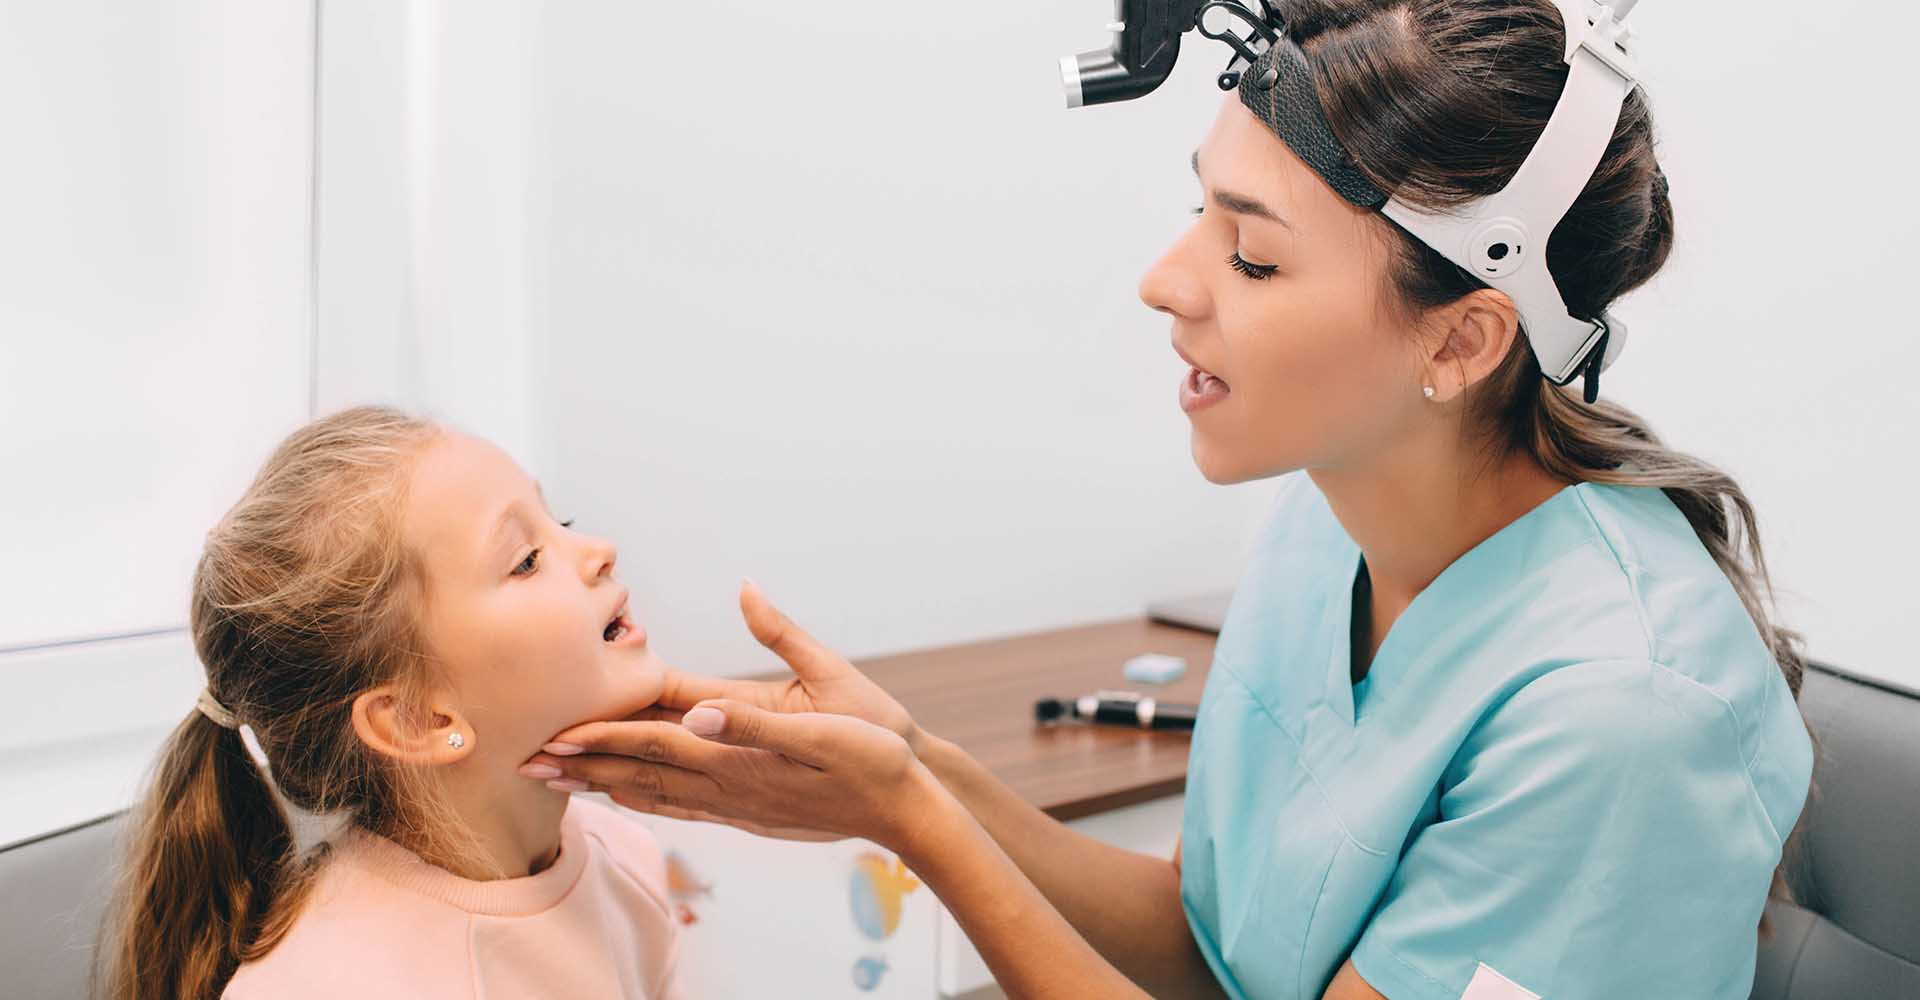 ENT doctor examining mouth of little girl at clinic